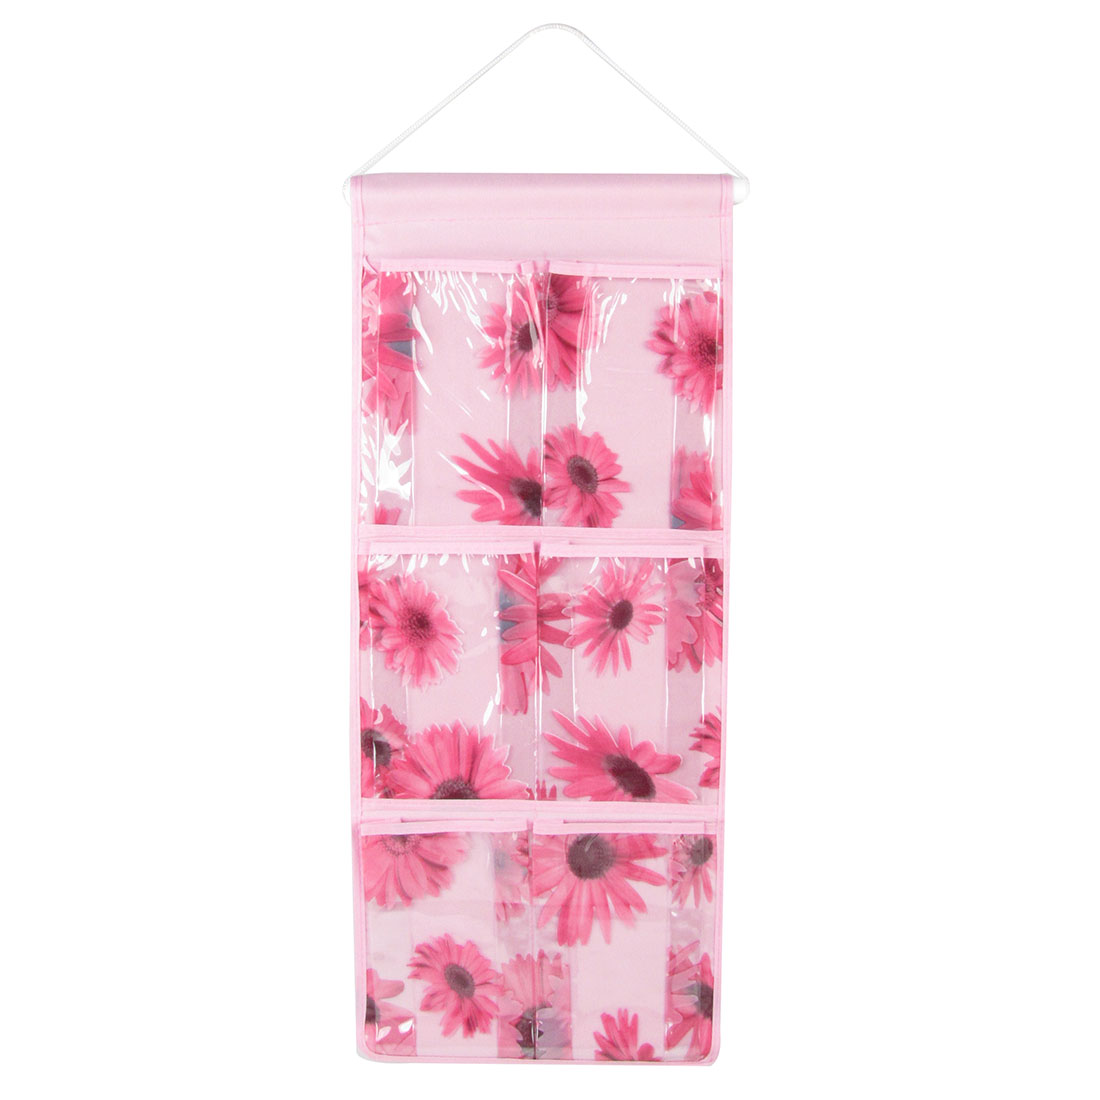 Pink 6 PVC Pockets Nylon Wall Hanging Storage Bag Organizer